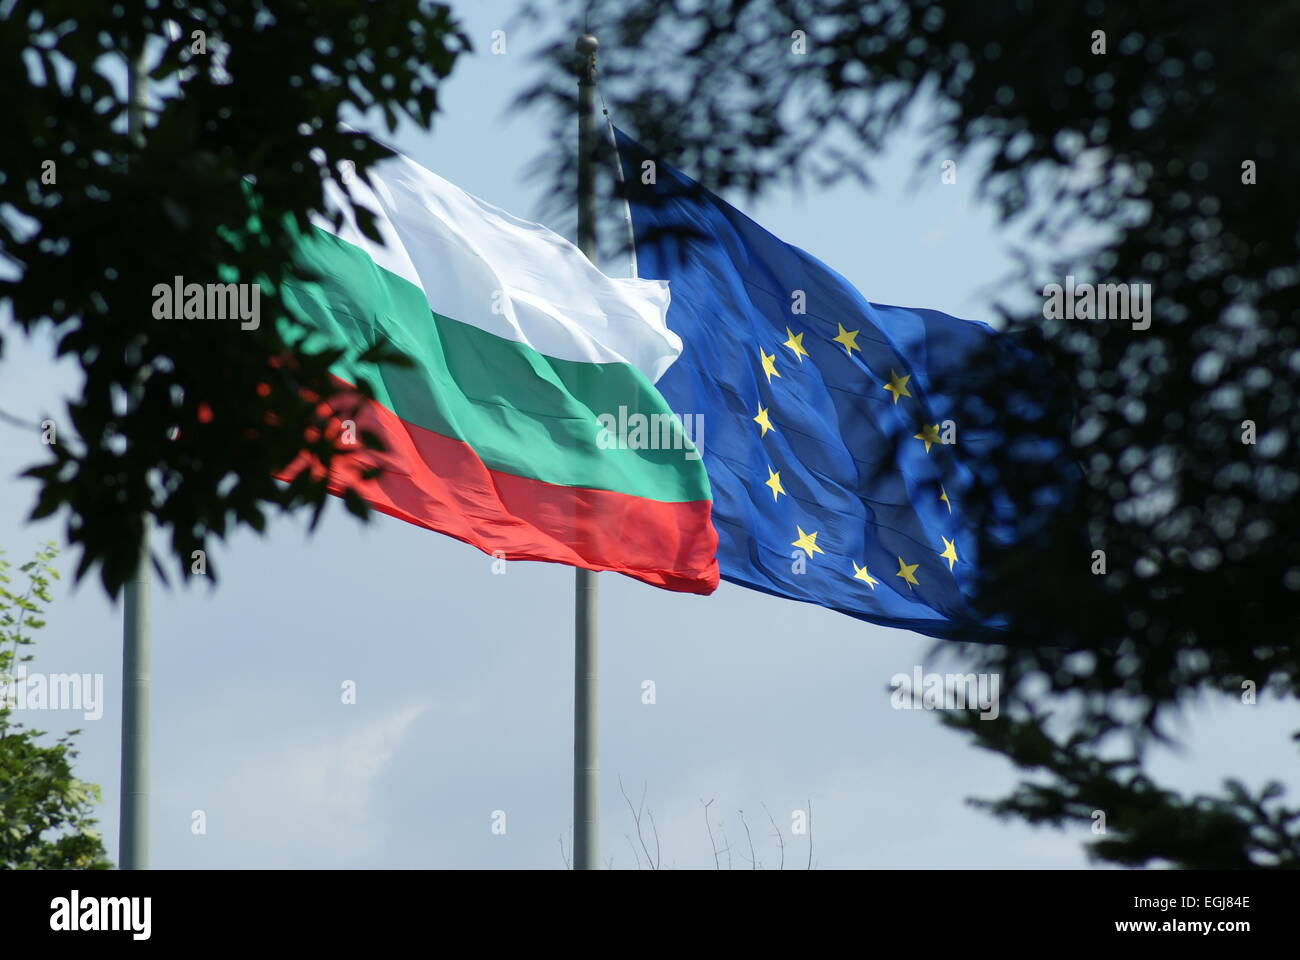 Bulgarian and European Union Flags Flying in the Wind against a Blue Sky - Stock Image